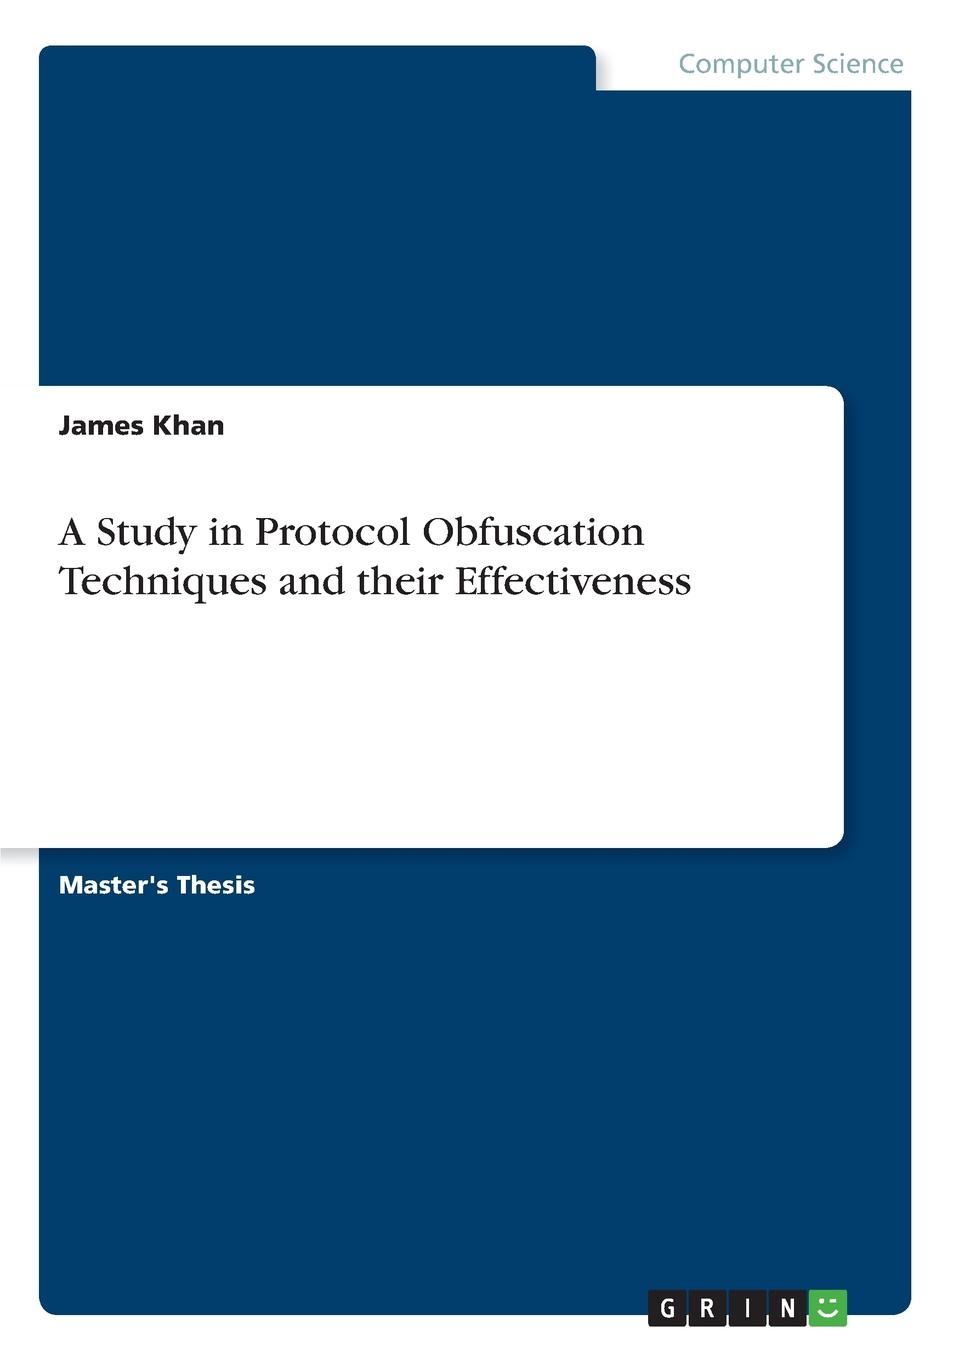 James Khan A Study in Protocol Obfuscation Techniques and their Effectiveness недорго, оригинальная цена